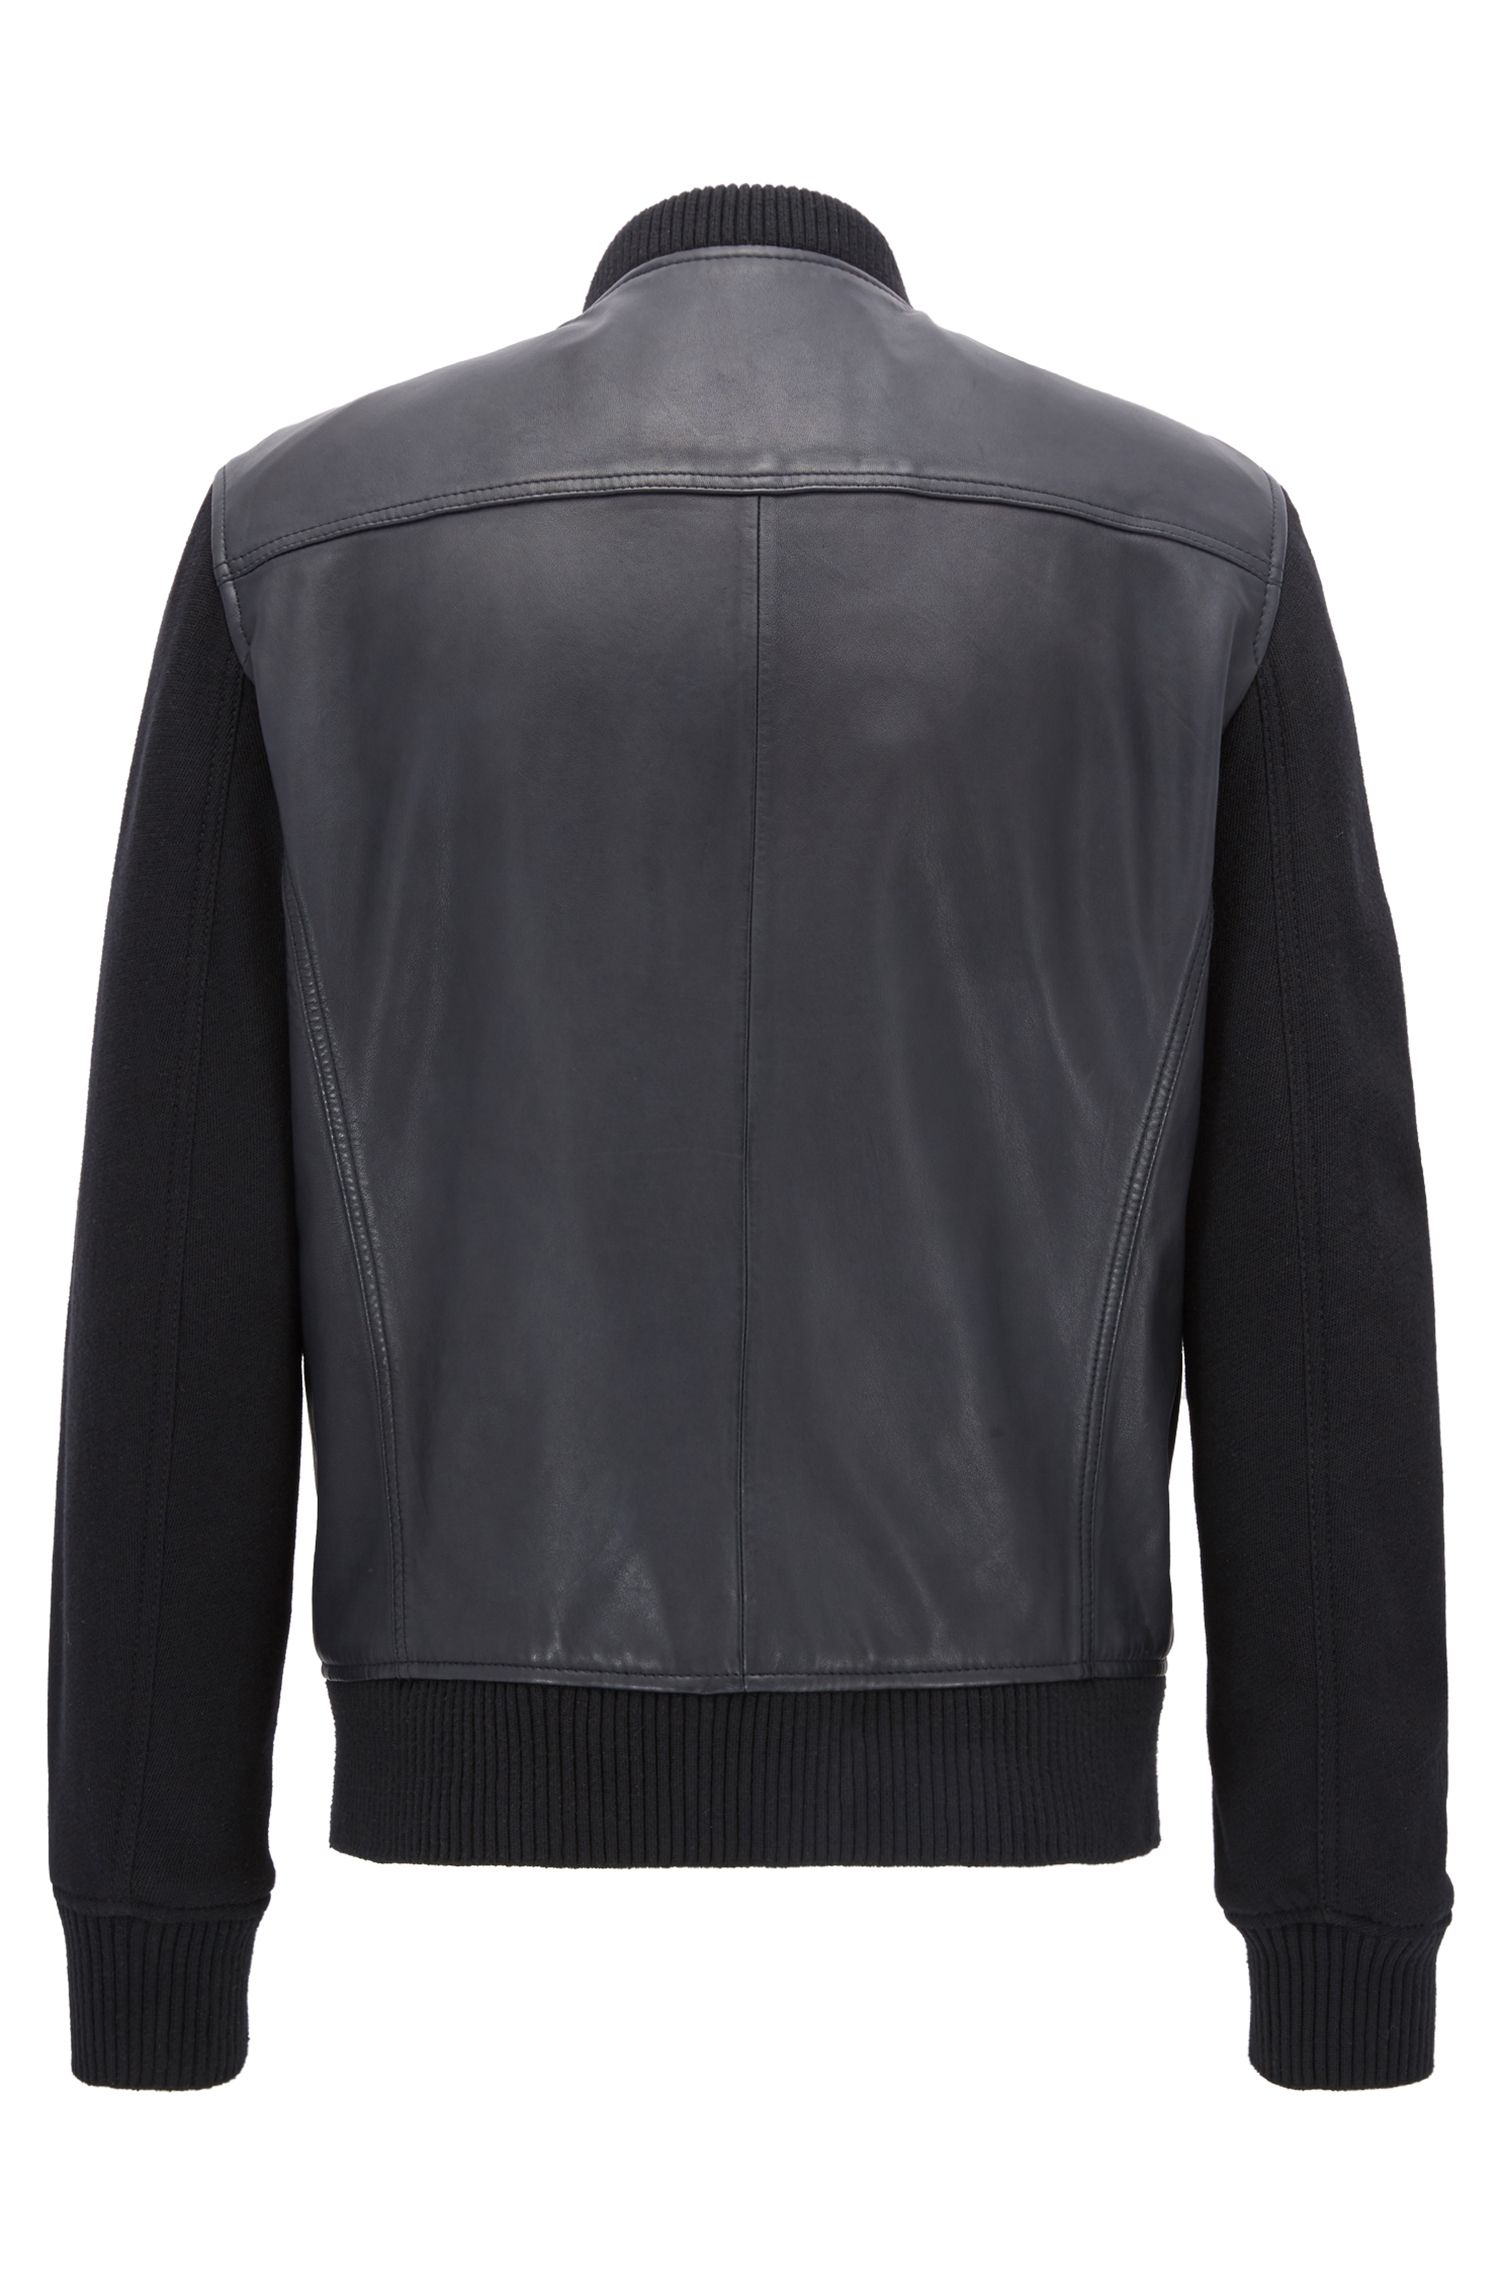 Bomber jacket in leather with knitted sleeves